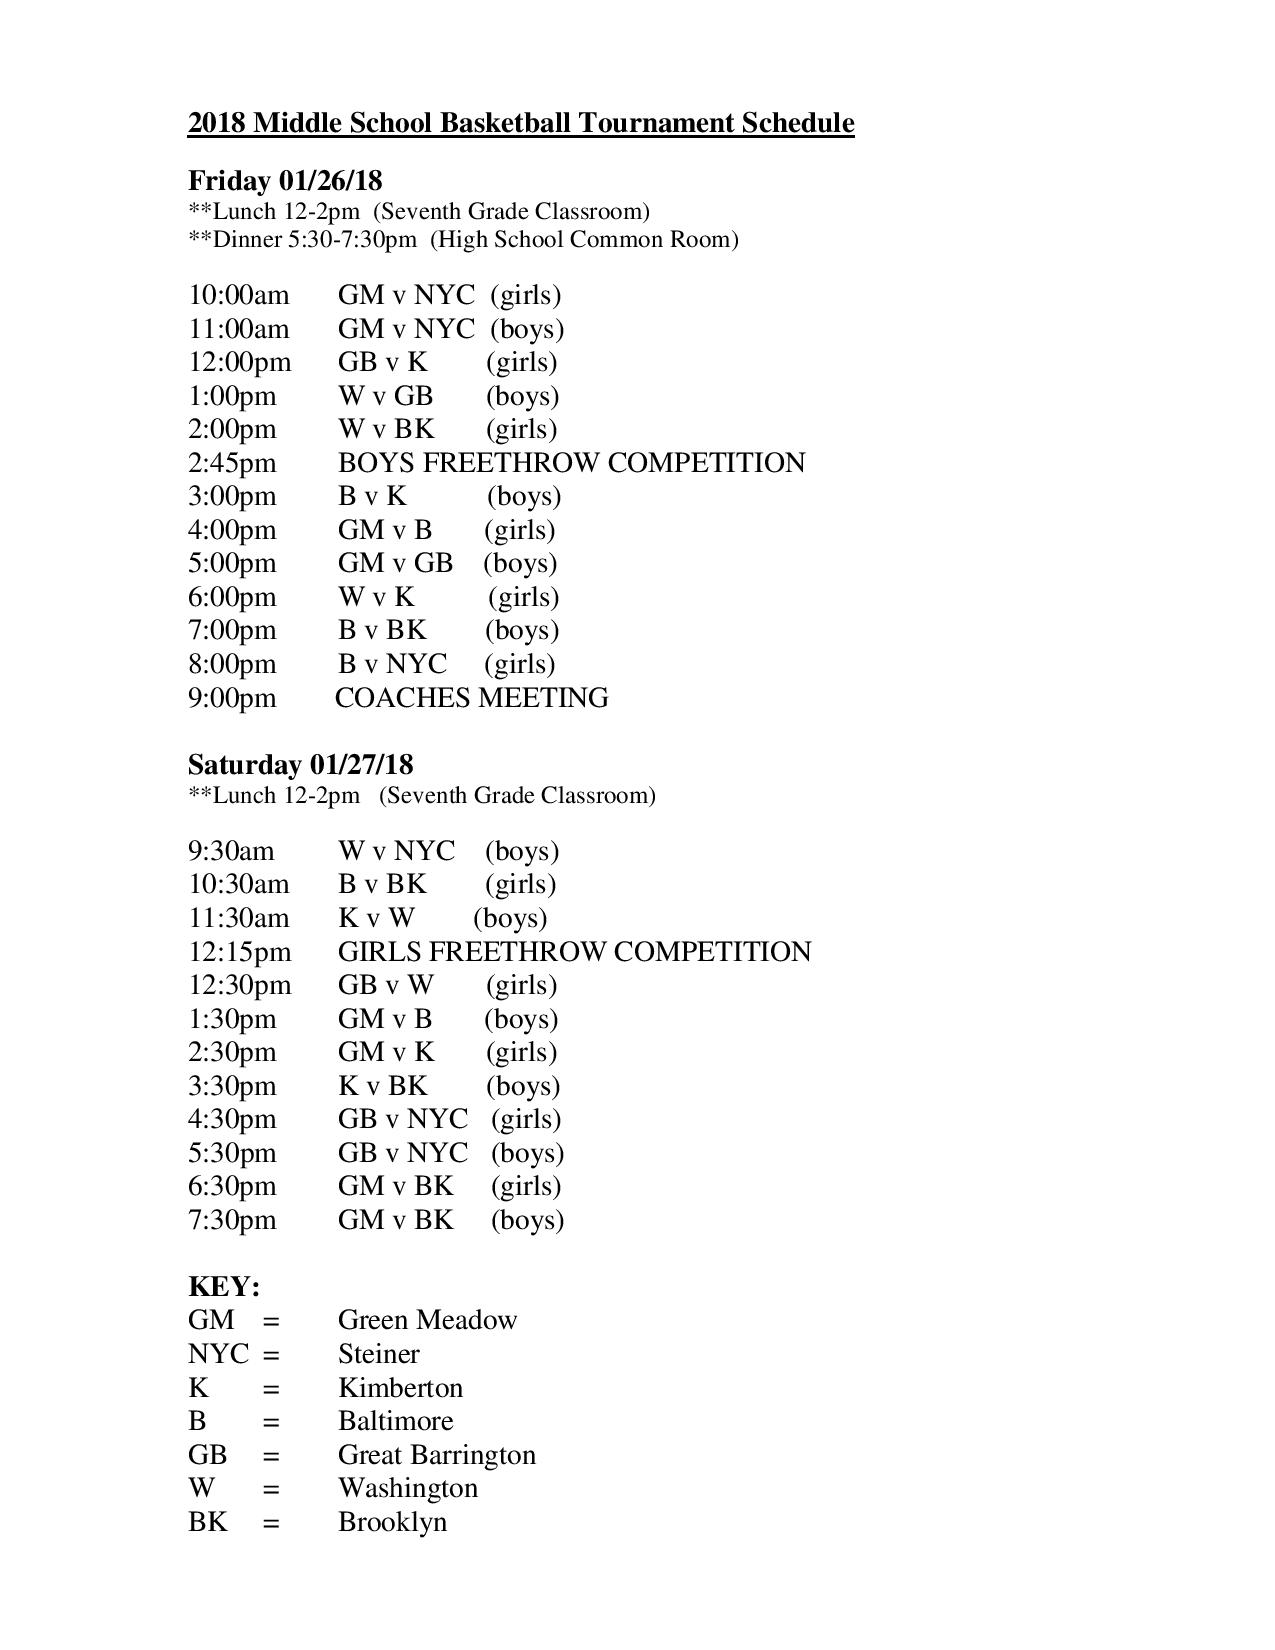 Friendship Games 2018 Final Schedule -page-001 (1).jpg